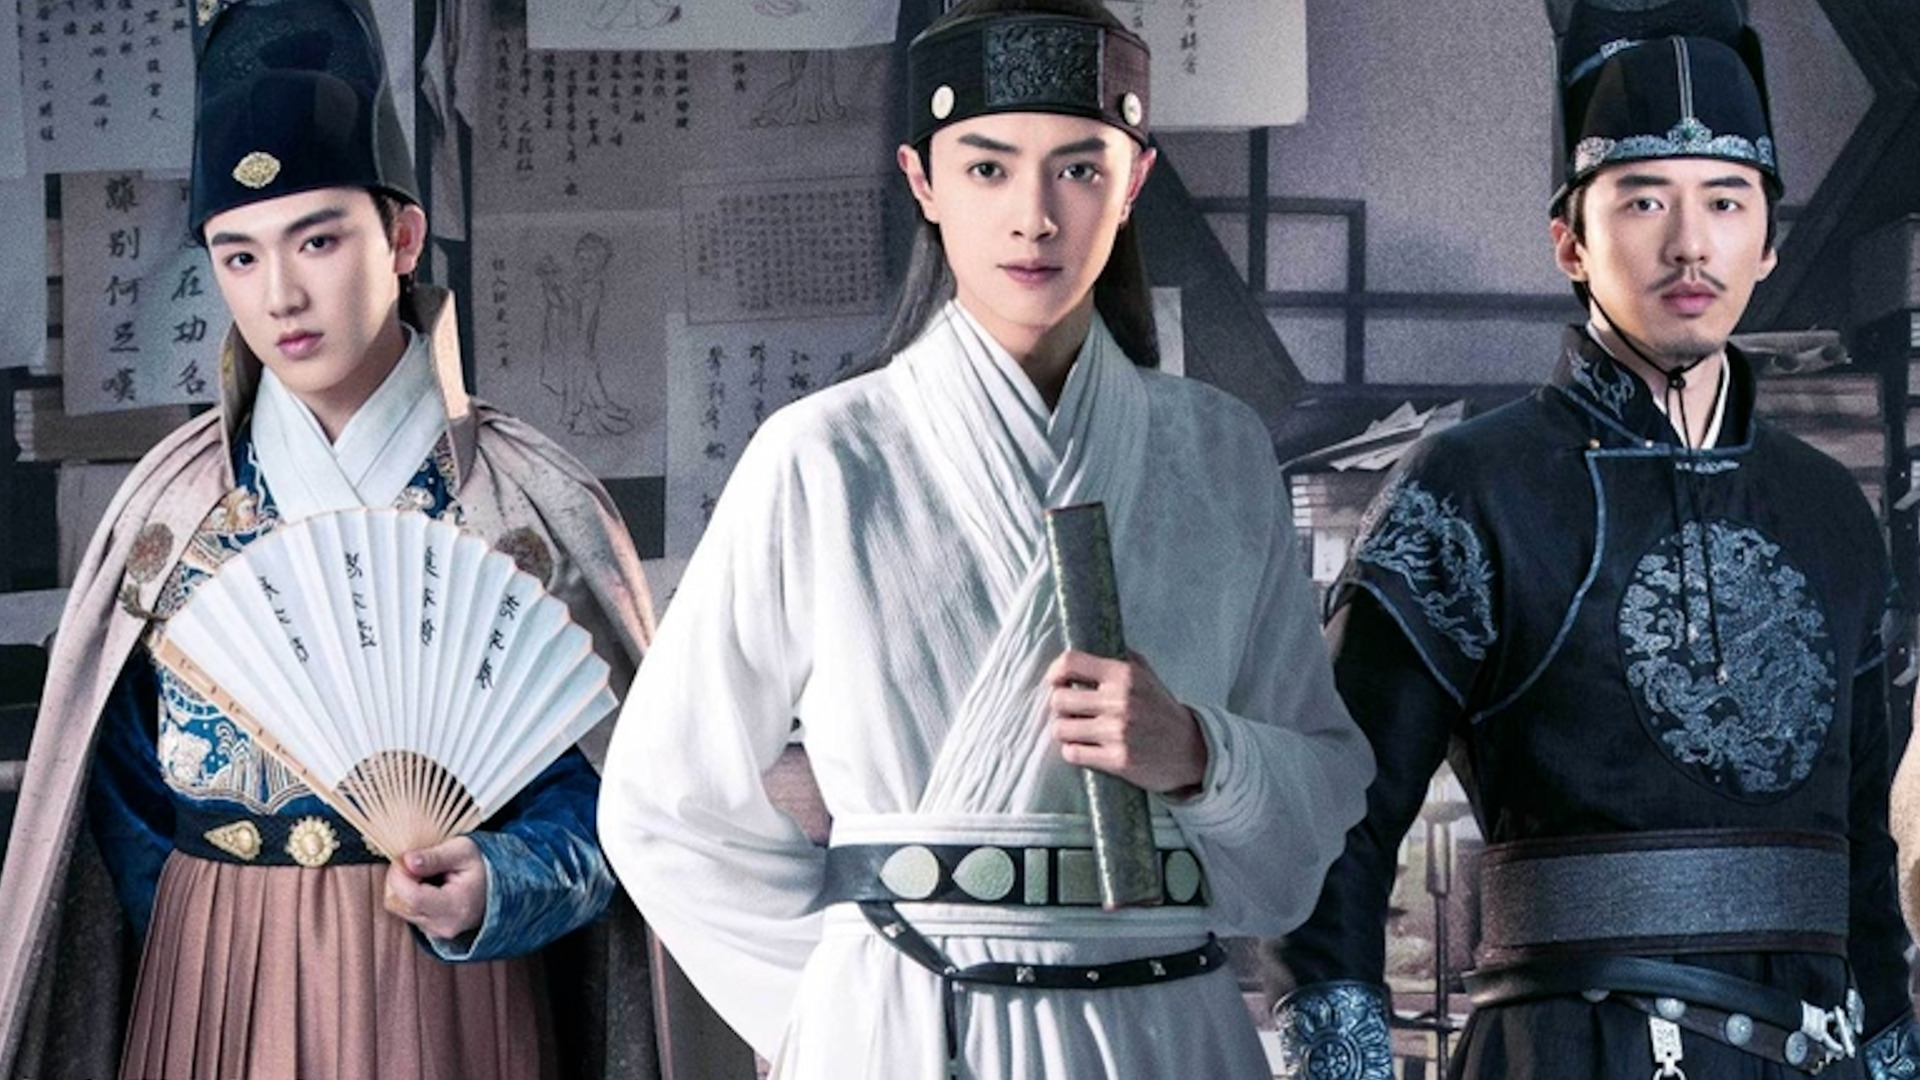 Show The Sleuth of Ming Dynasty